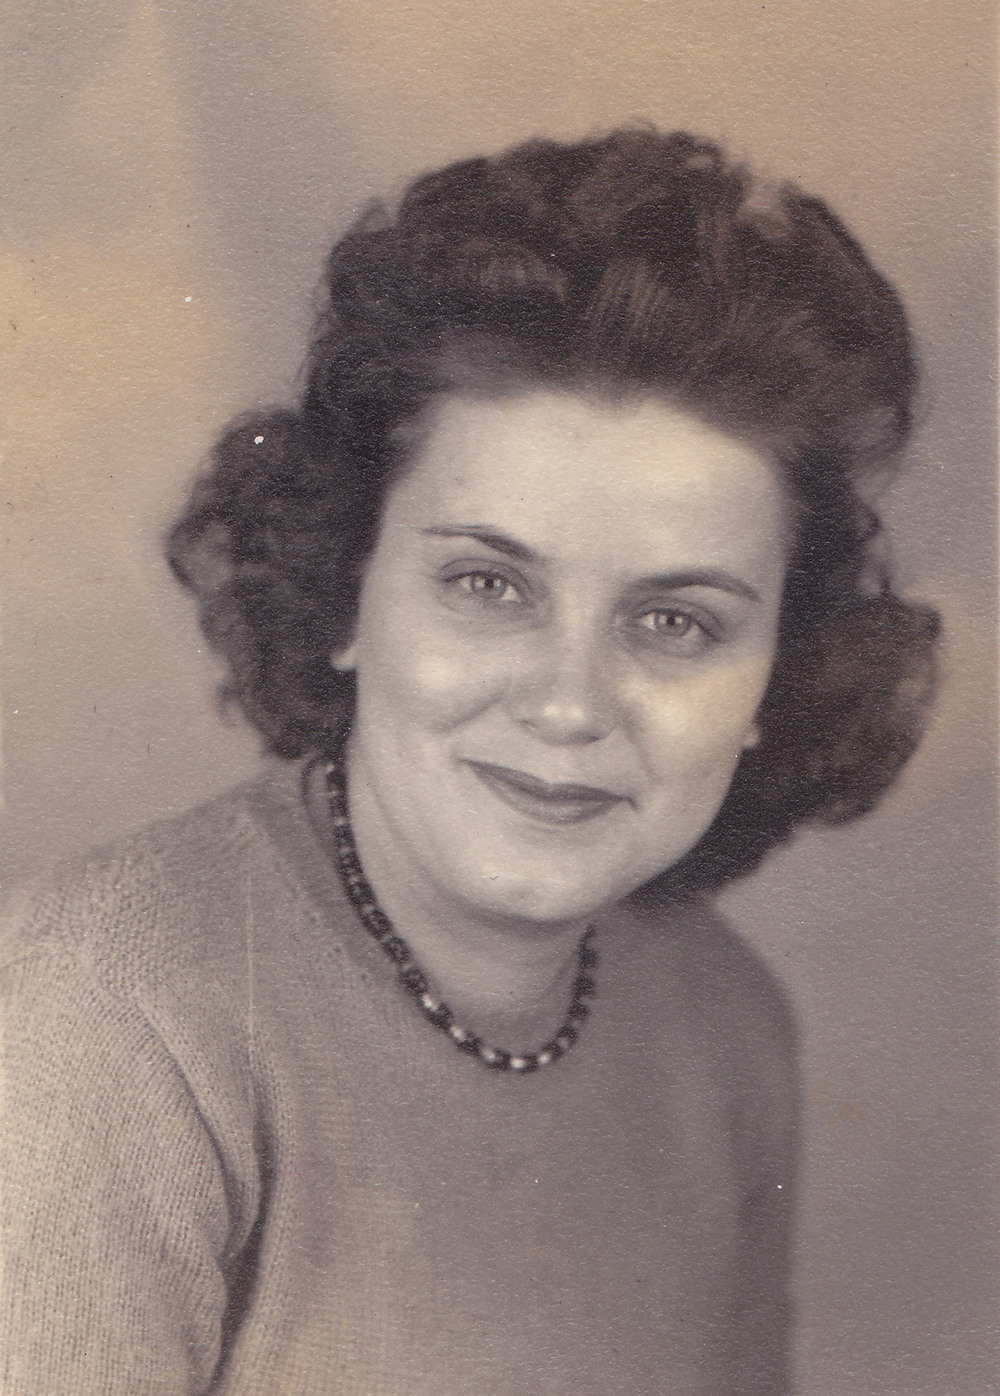 Anne Rorer.  Sister of William Rorer former Superintendent and Principal of Blythewood School.